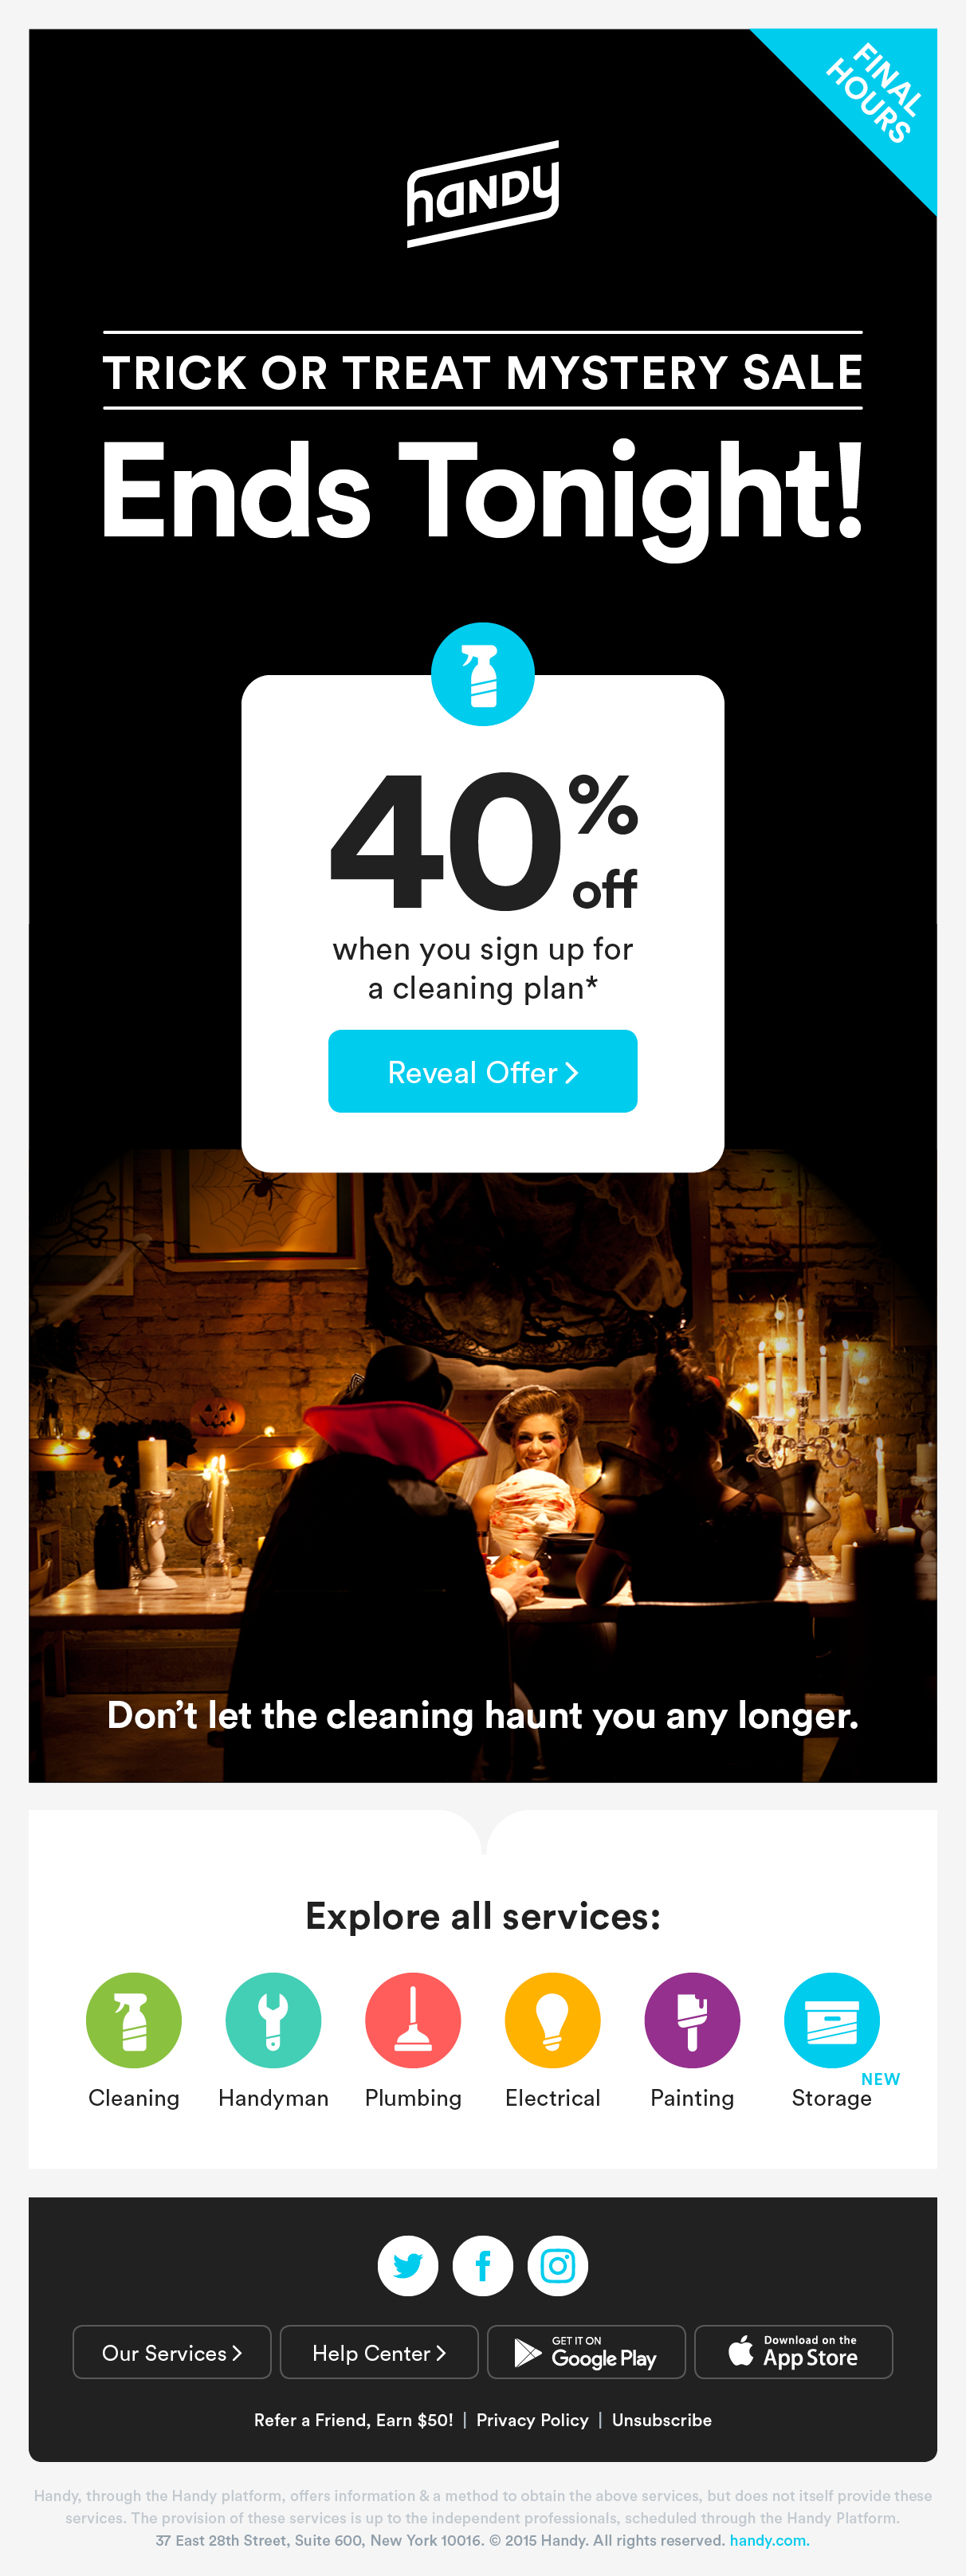 Email Marketing for Handy